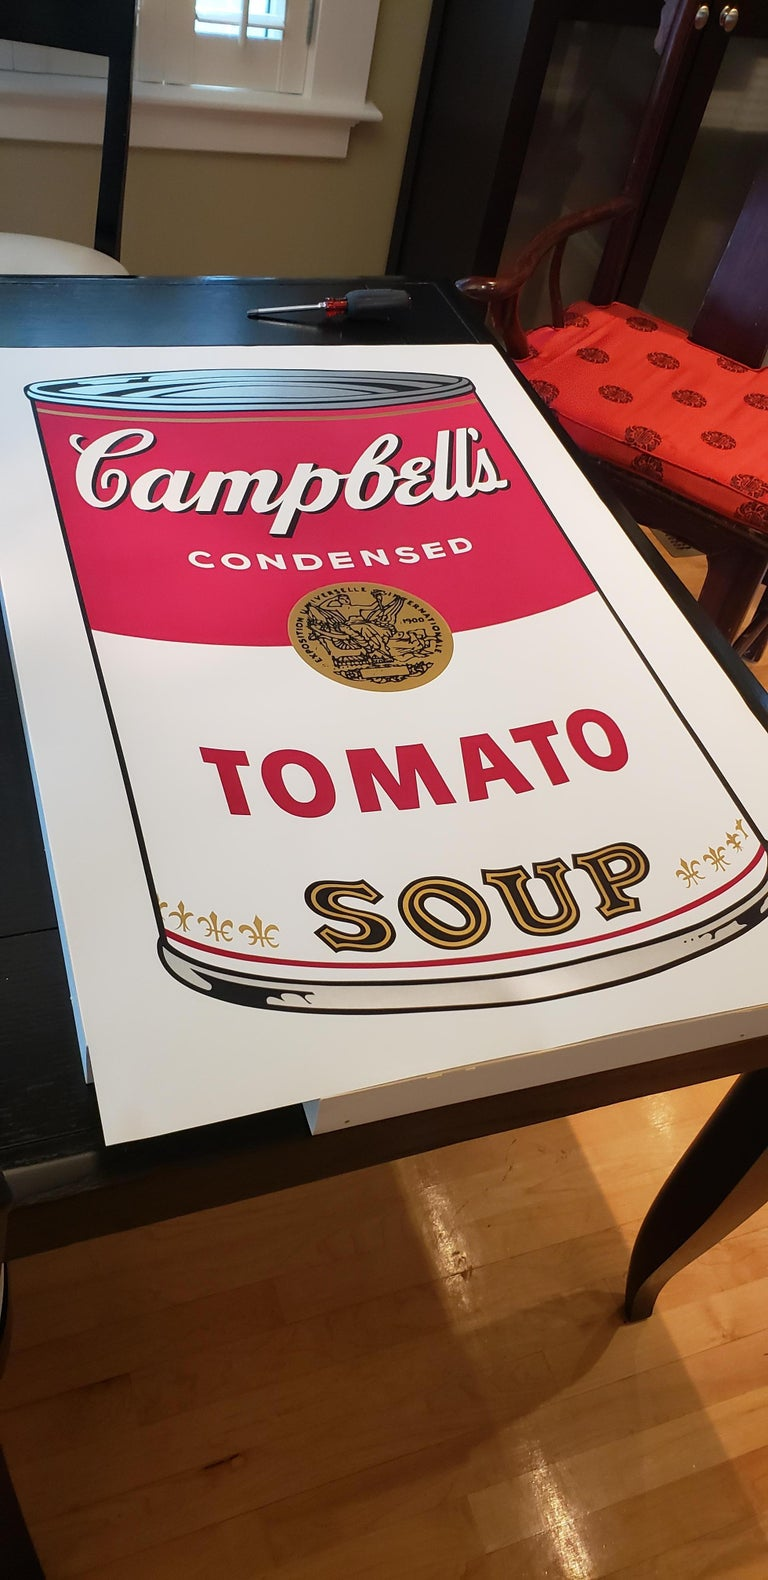 Campbell's Soup I, Tomato F&S II.46 - Contemporary Print by Andy Warhol